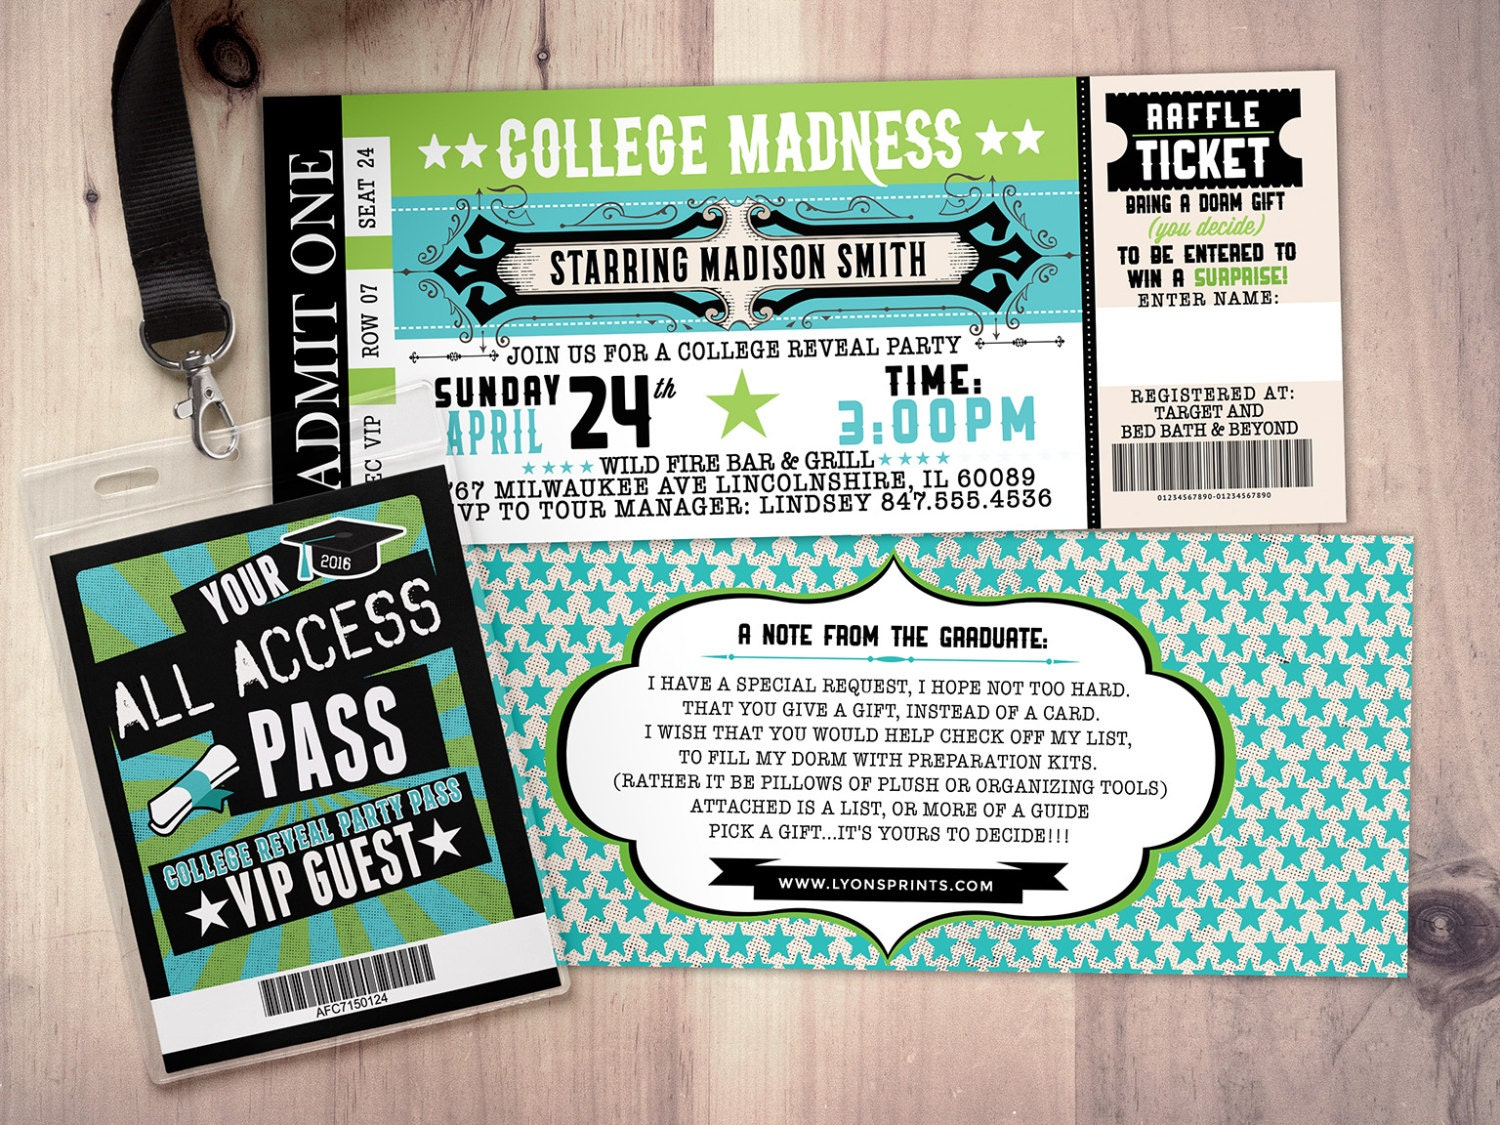 Super College reveal party, Concert ticket, graduation party invitation  JJ46